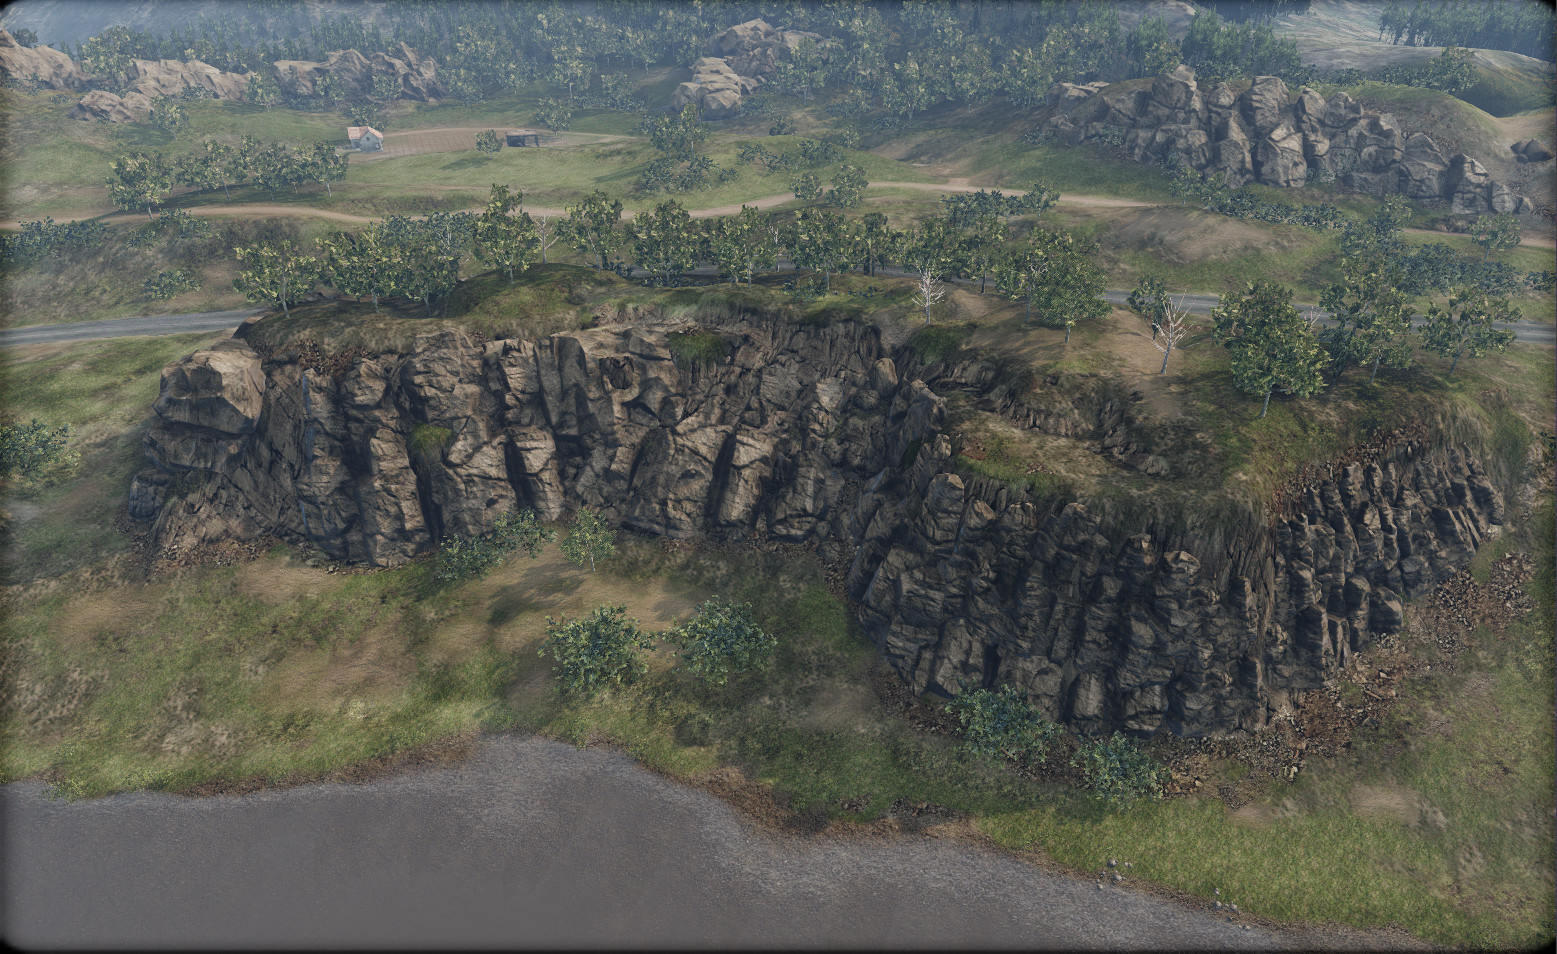 Thx clevenger 2015 03 11 19 13 59 pvp02 riverpoint cry cryengine sandbox x64 build 2868